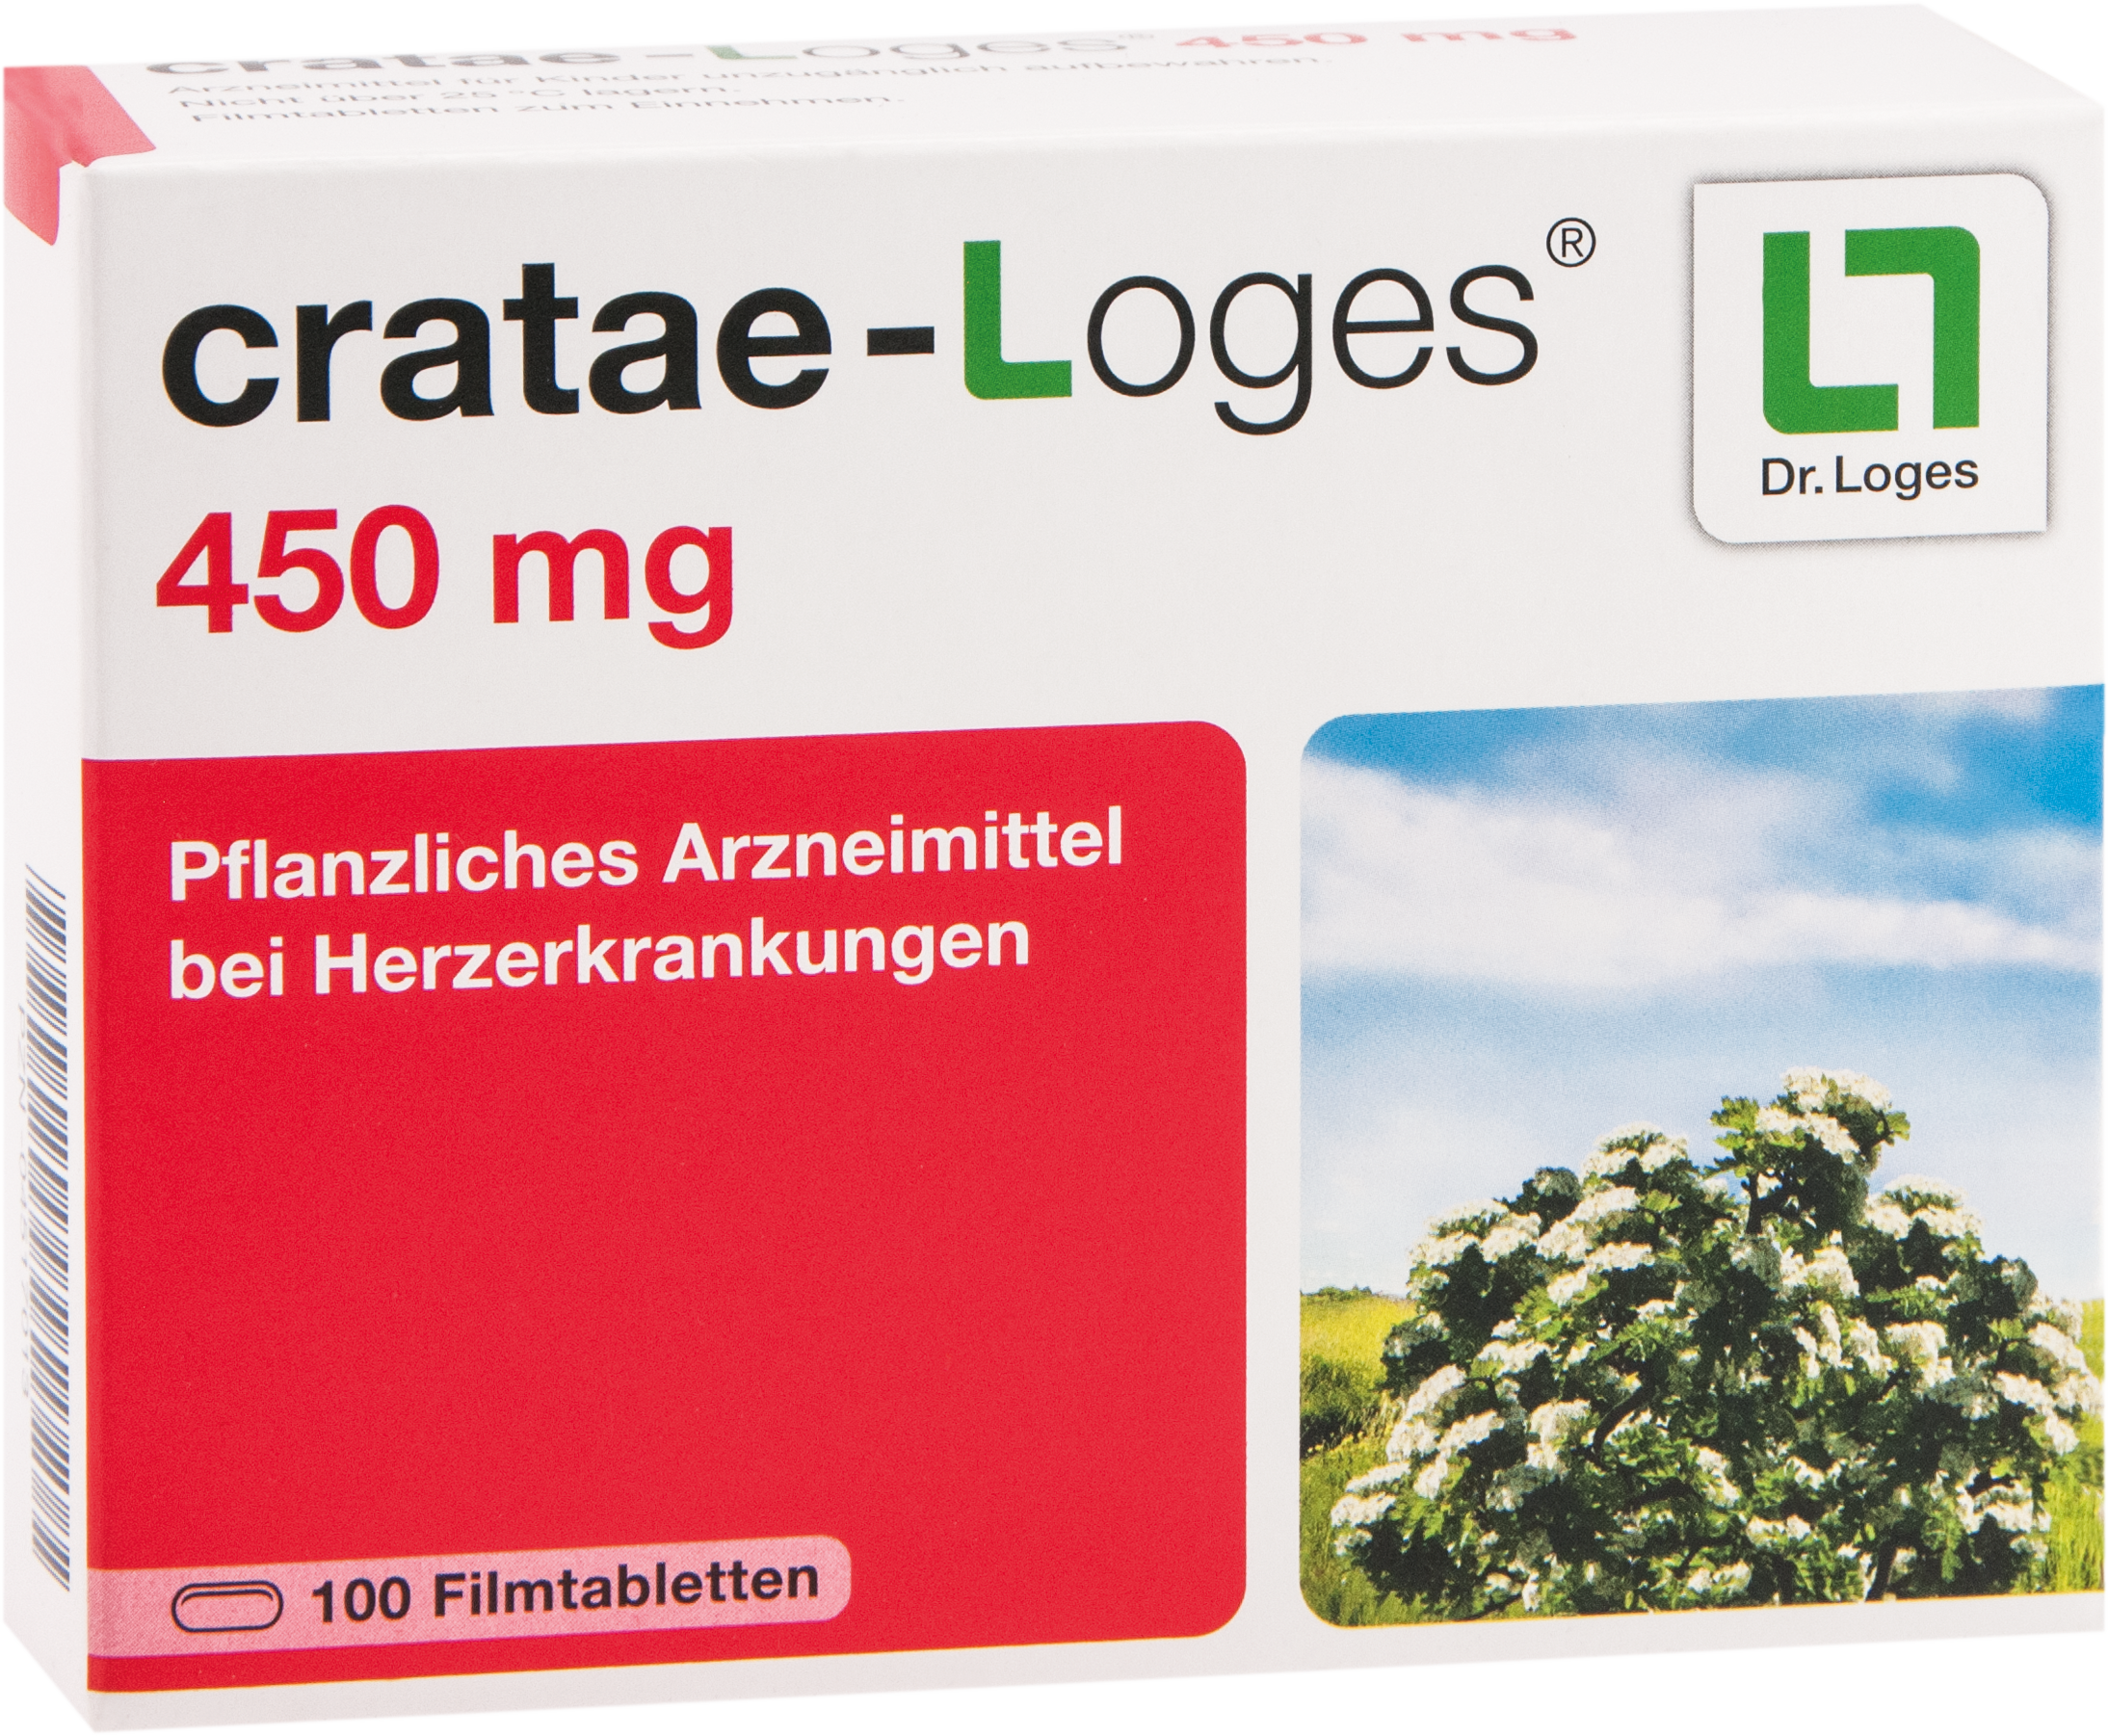 cratae-loges 450mg